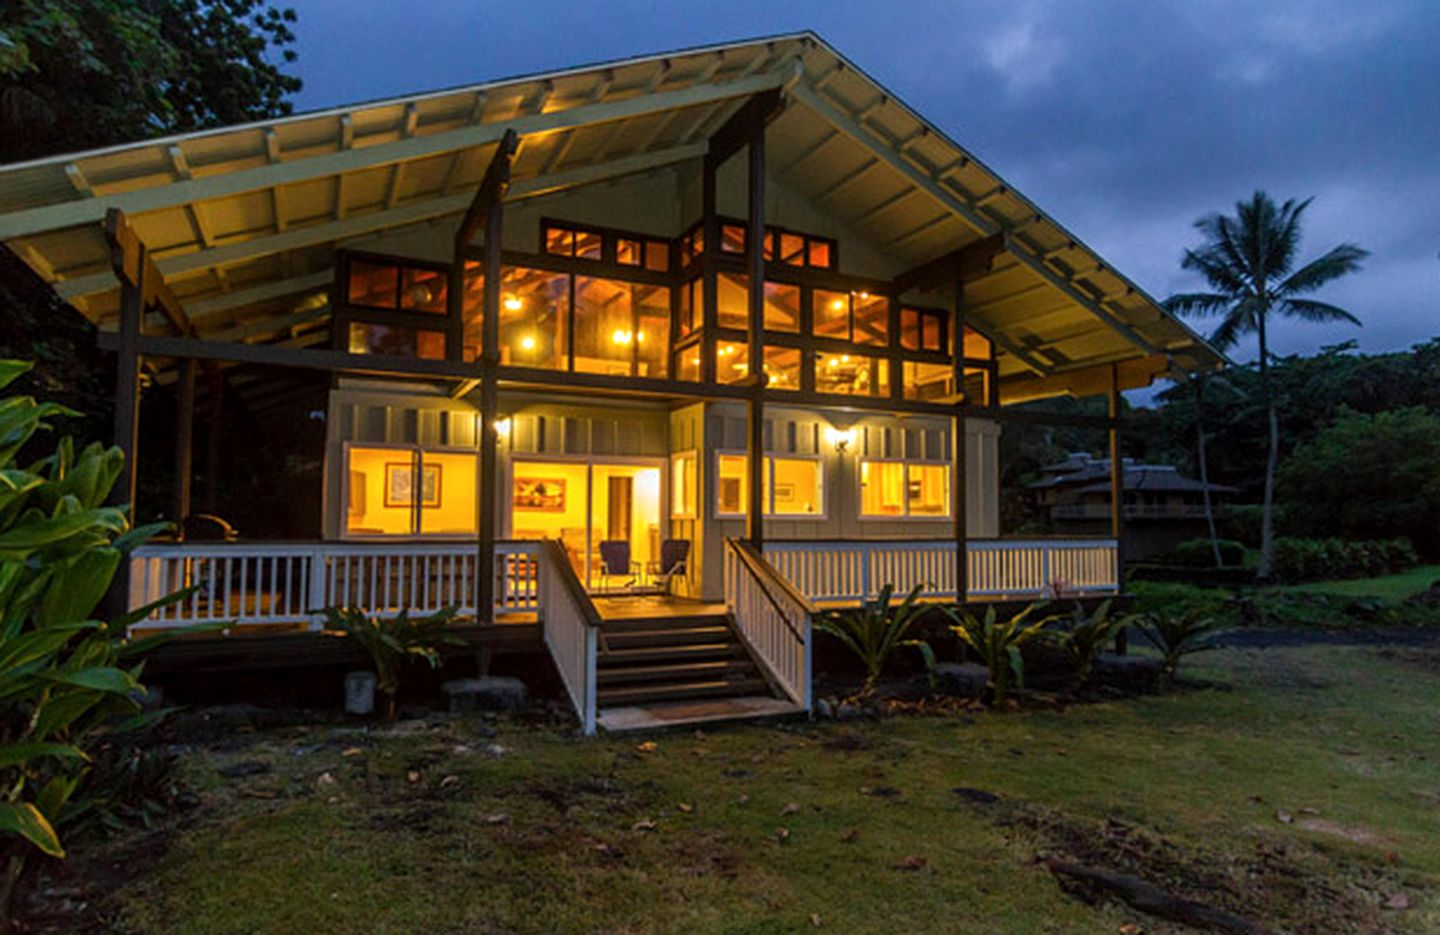 Fabulous Private Cottage Rental In The Secluded Town Of Hana In Maui Hawaii Home Interior And Landscaping Ologienasavecom